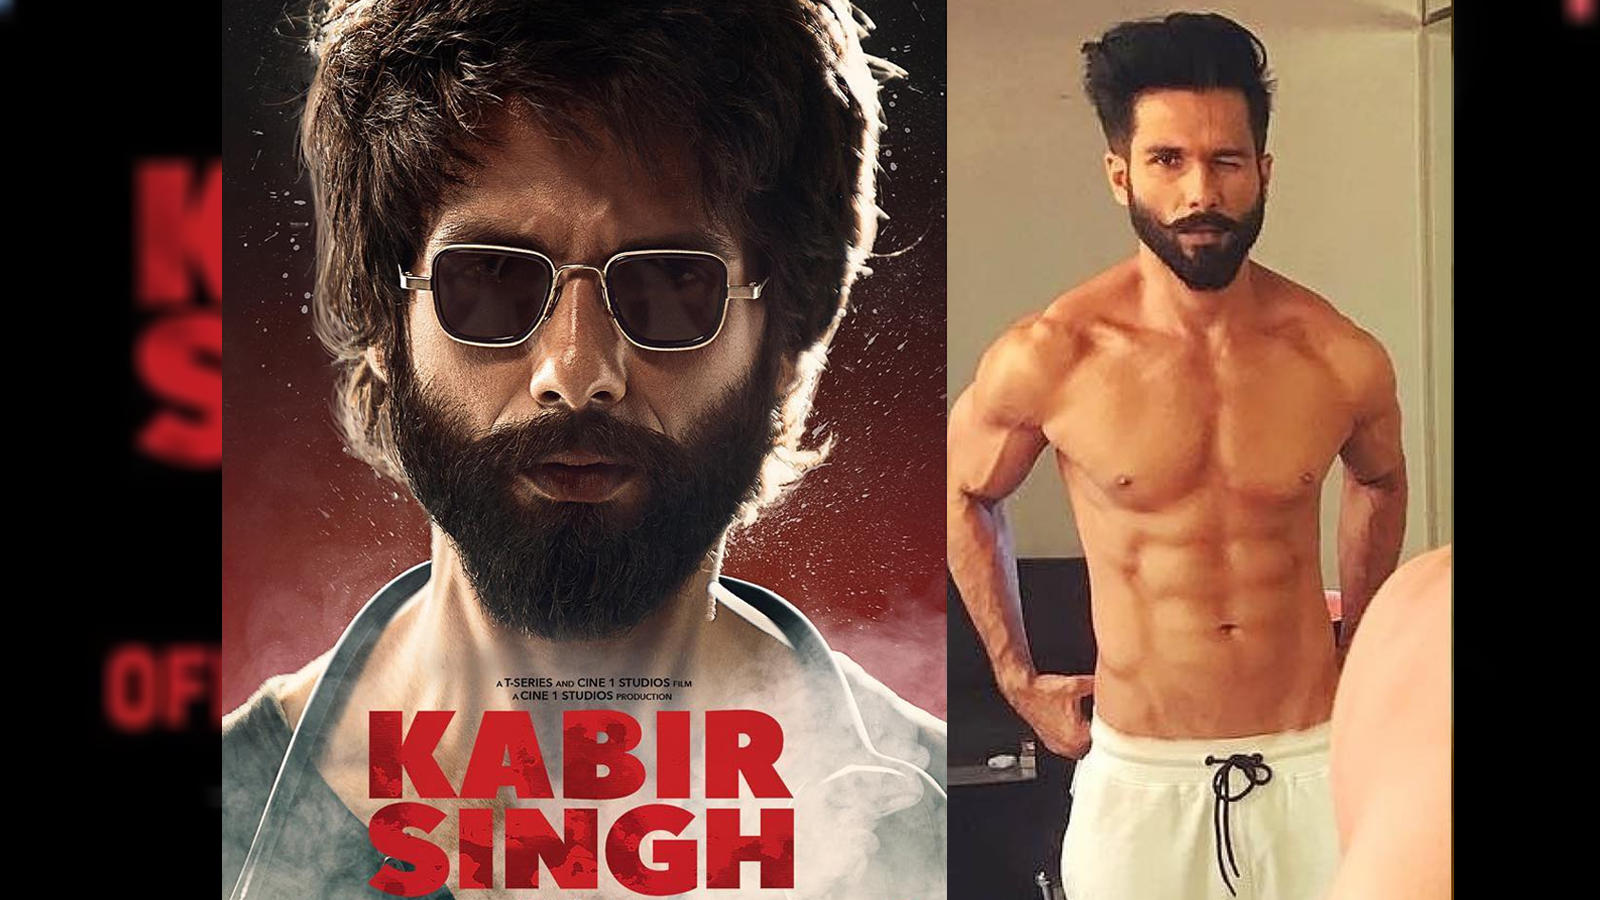 Shahid Kapoor finds 'Kabir Singh' commercially appealing